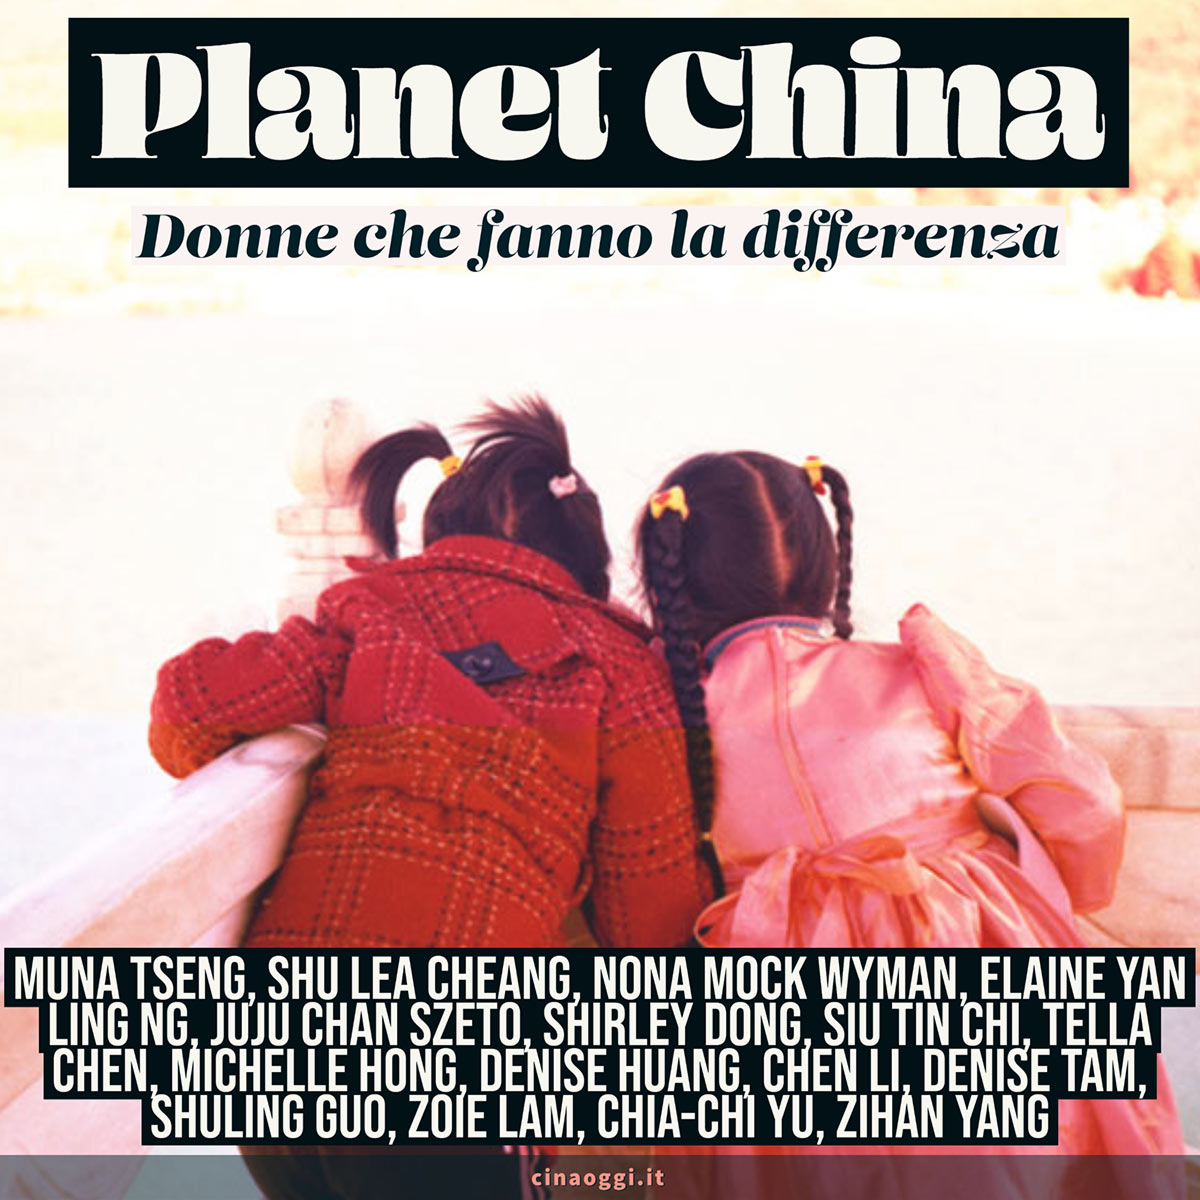 planet china 13 donne